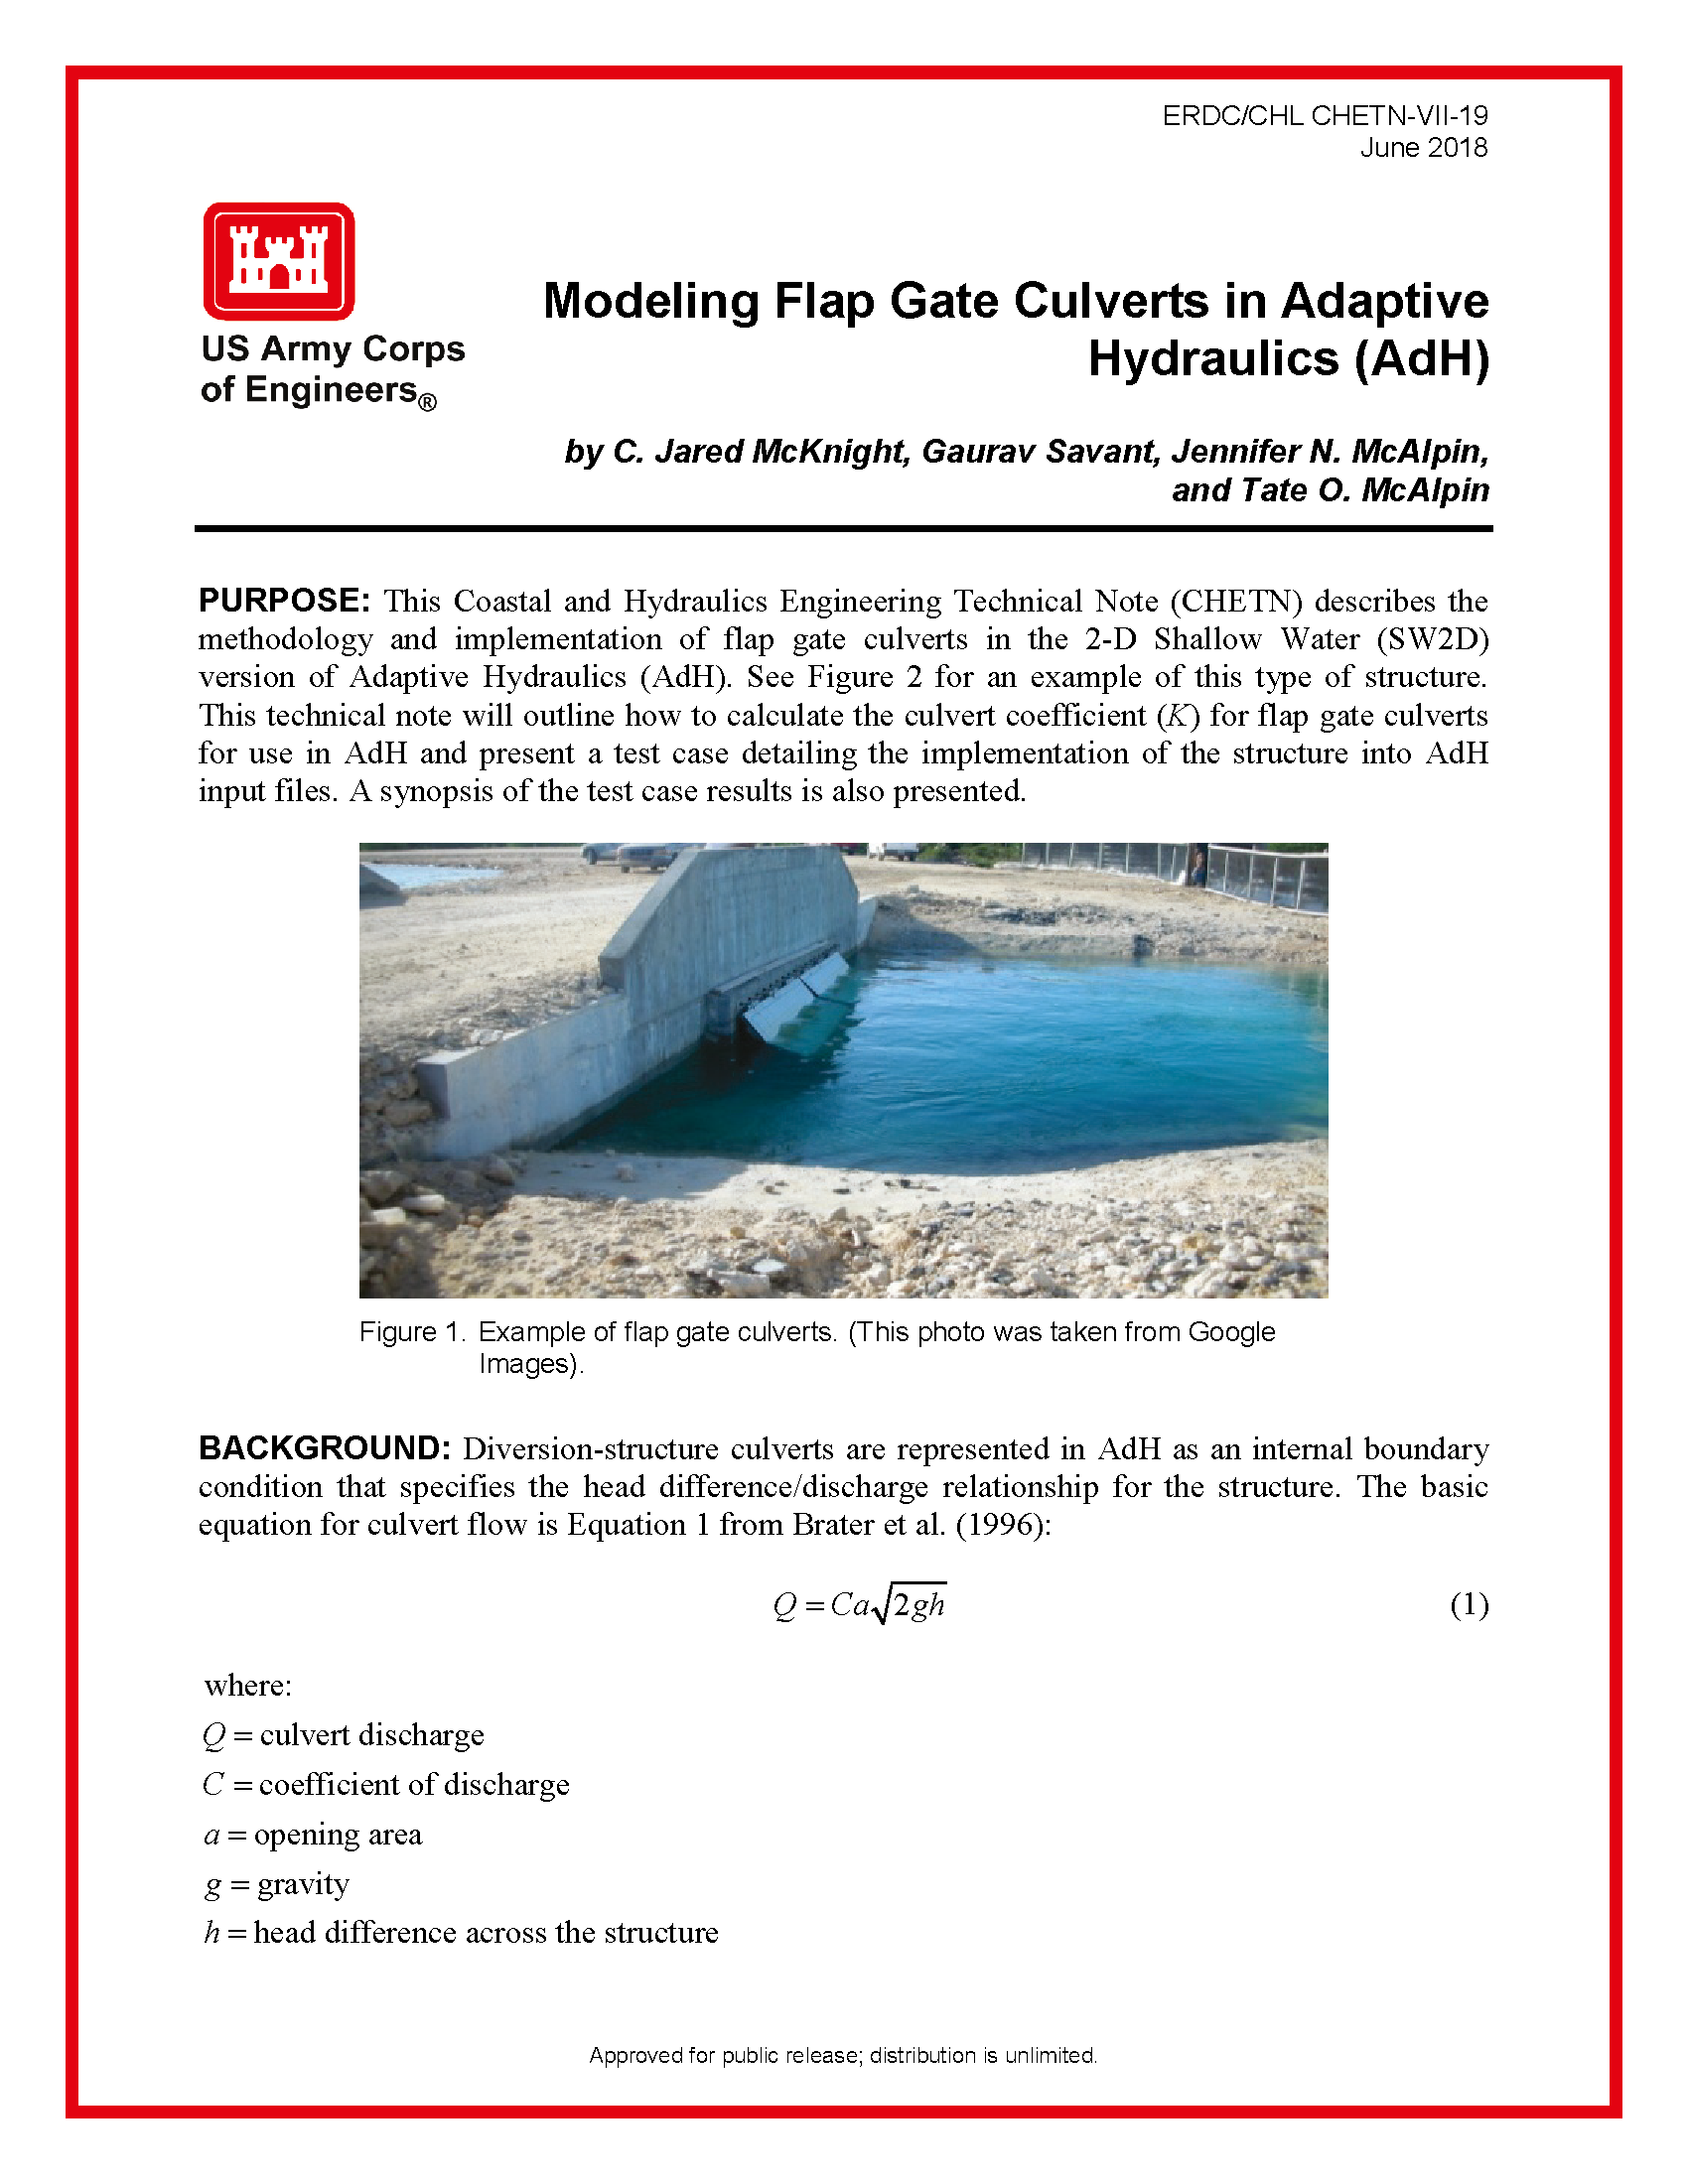 Modeling flap gate culverts in Adaptive Hydraulics (AdH